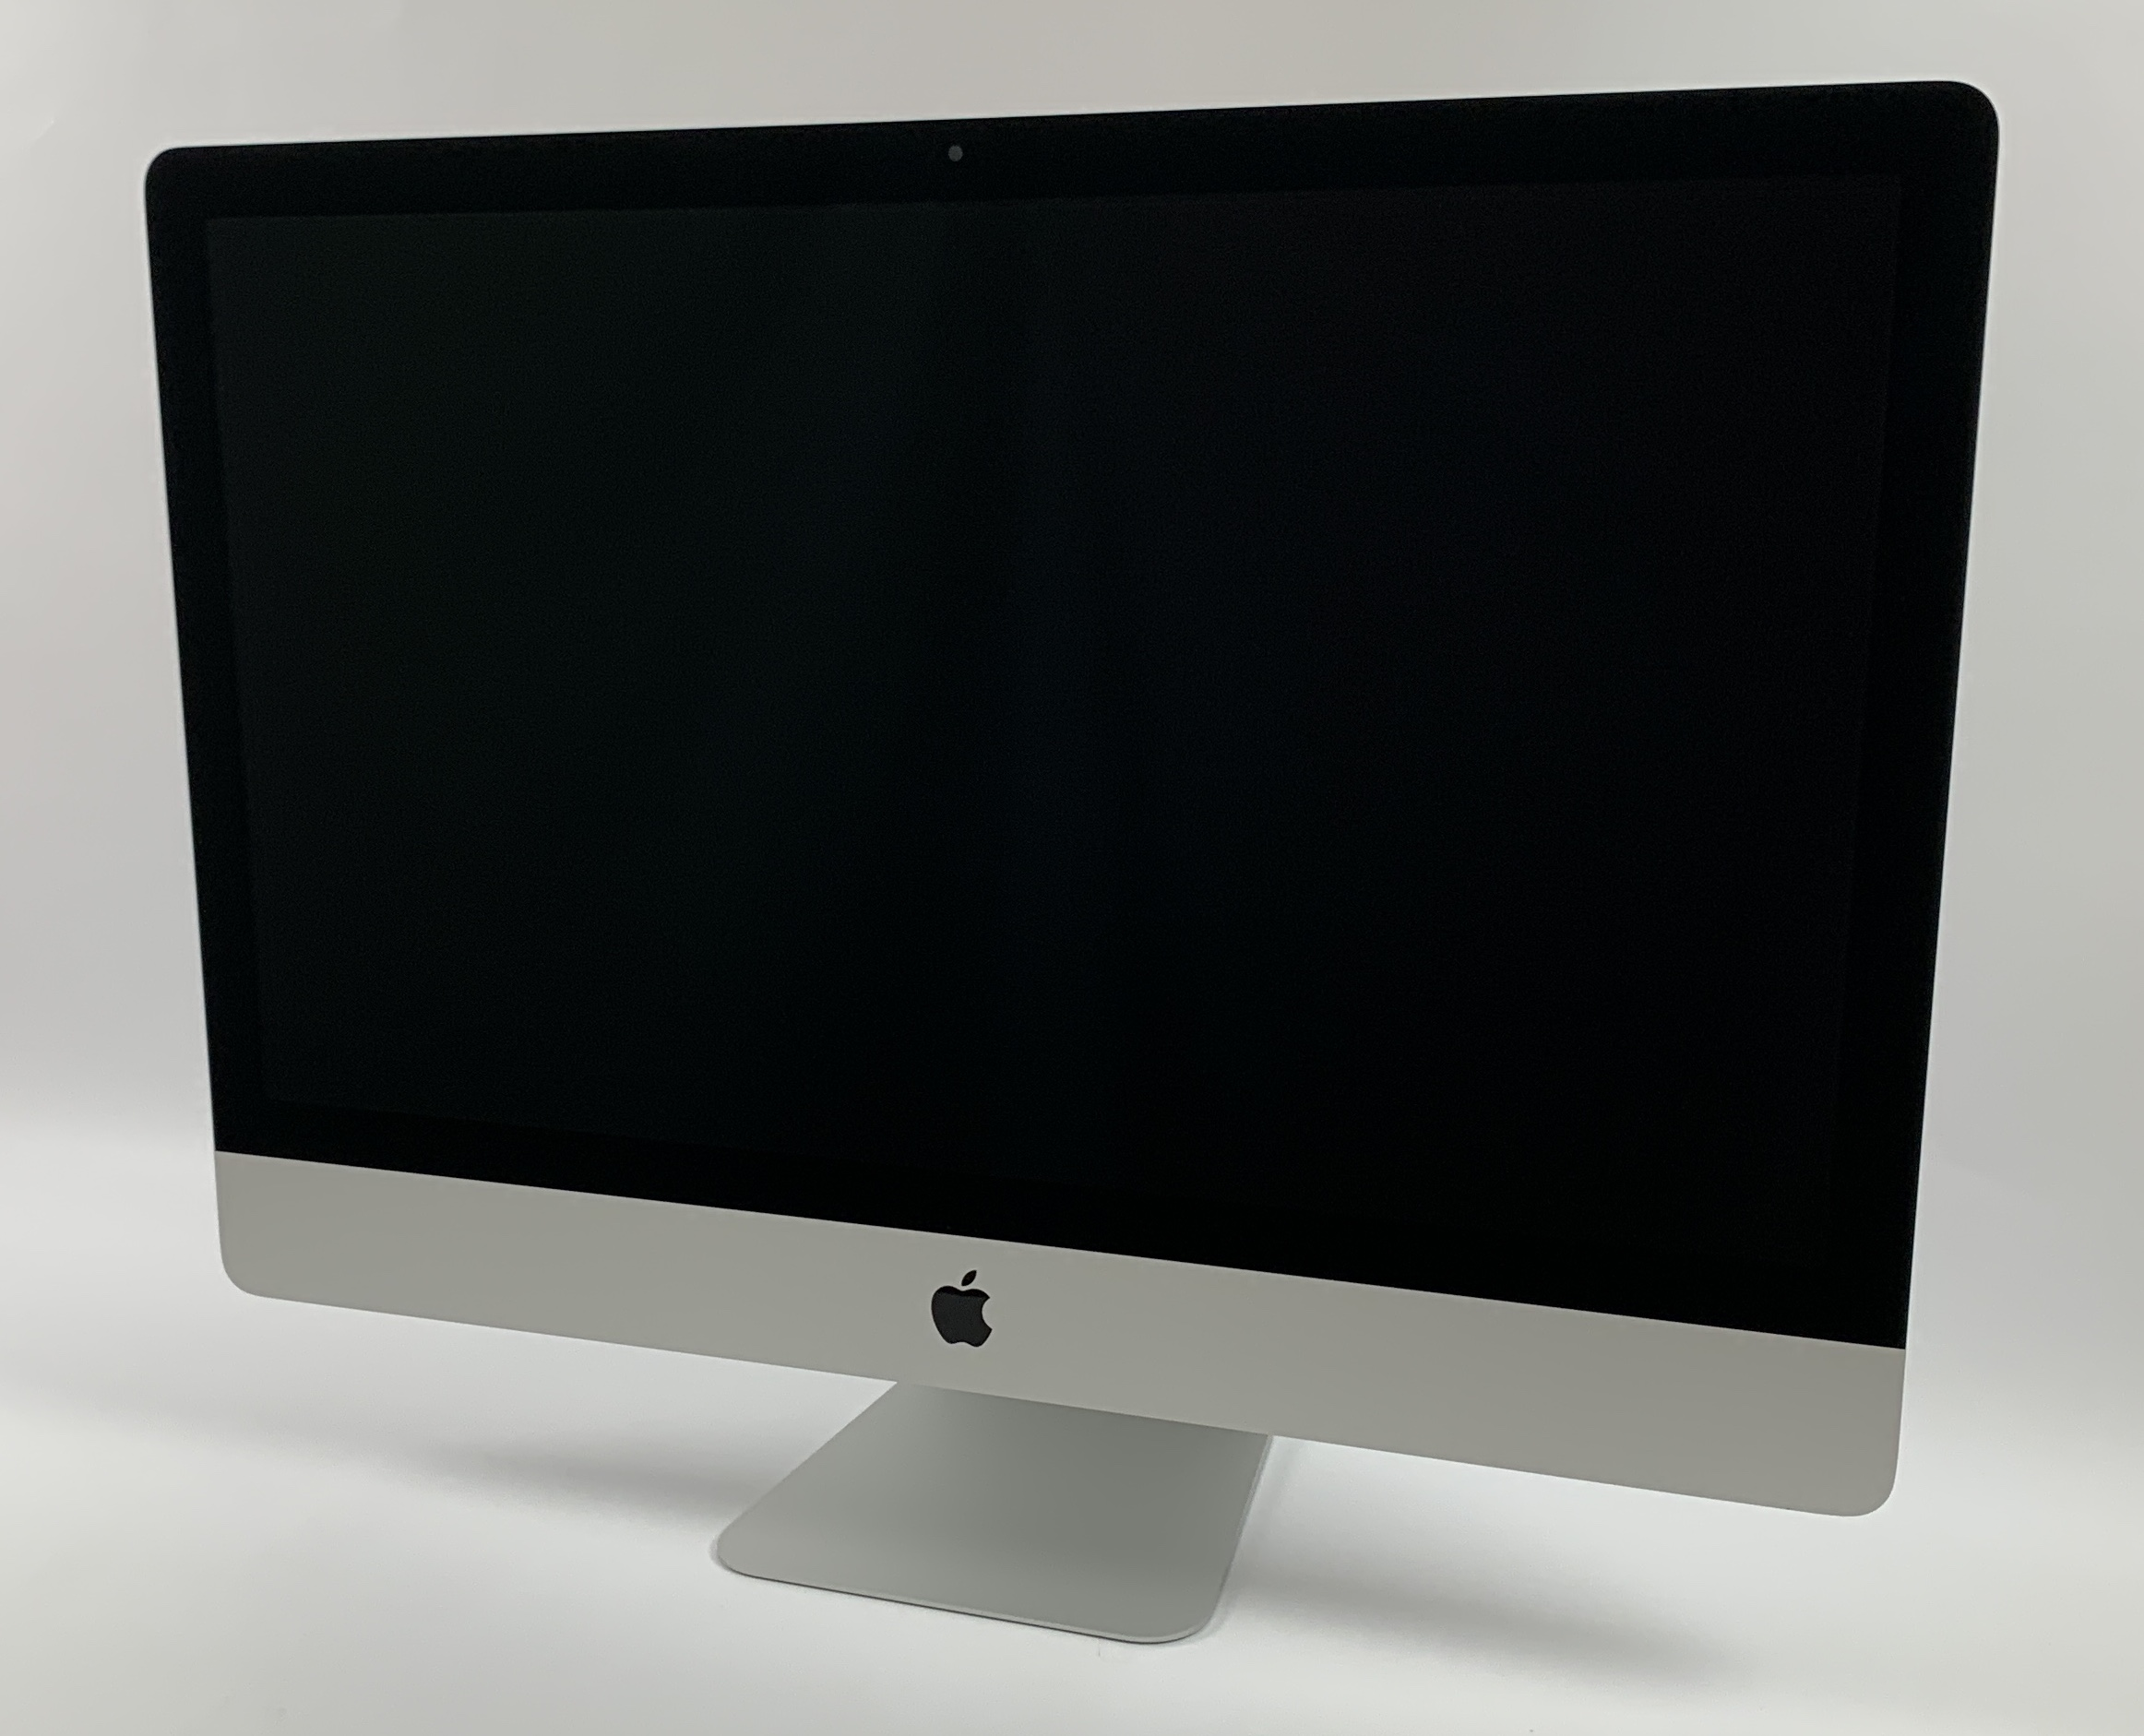 "iMac 27"" Retina 5K Early 2019 (Intel 6-Core i5 3.0 GHz 8 GB RAM 1 TB SSD), Intel 6-Core i5 3.0 GHz, 8 GB RAM, 1 TB SSD (Third-party), bild 1"